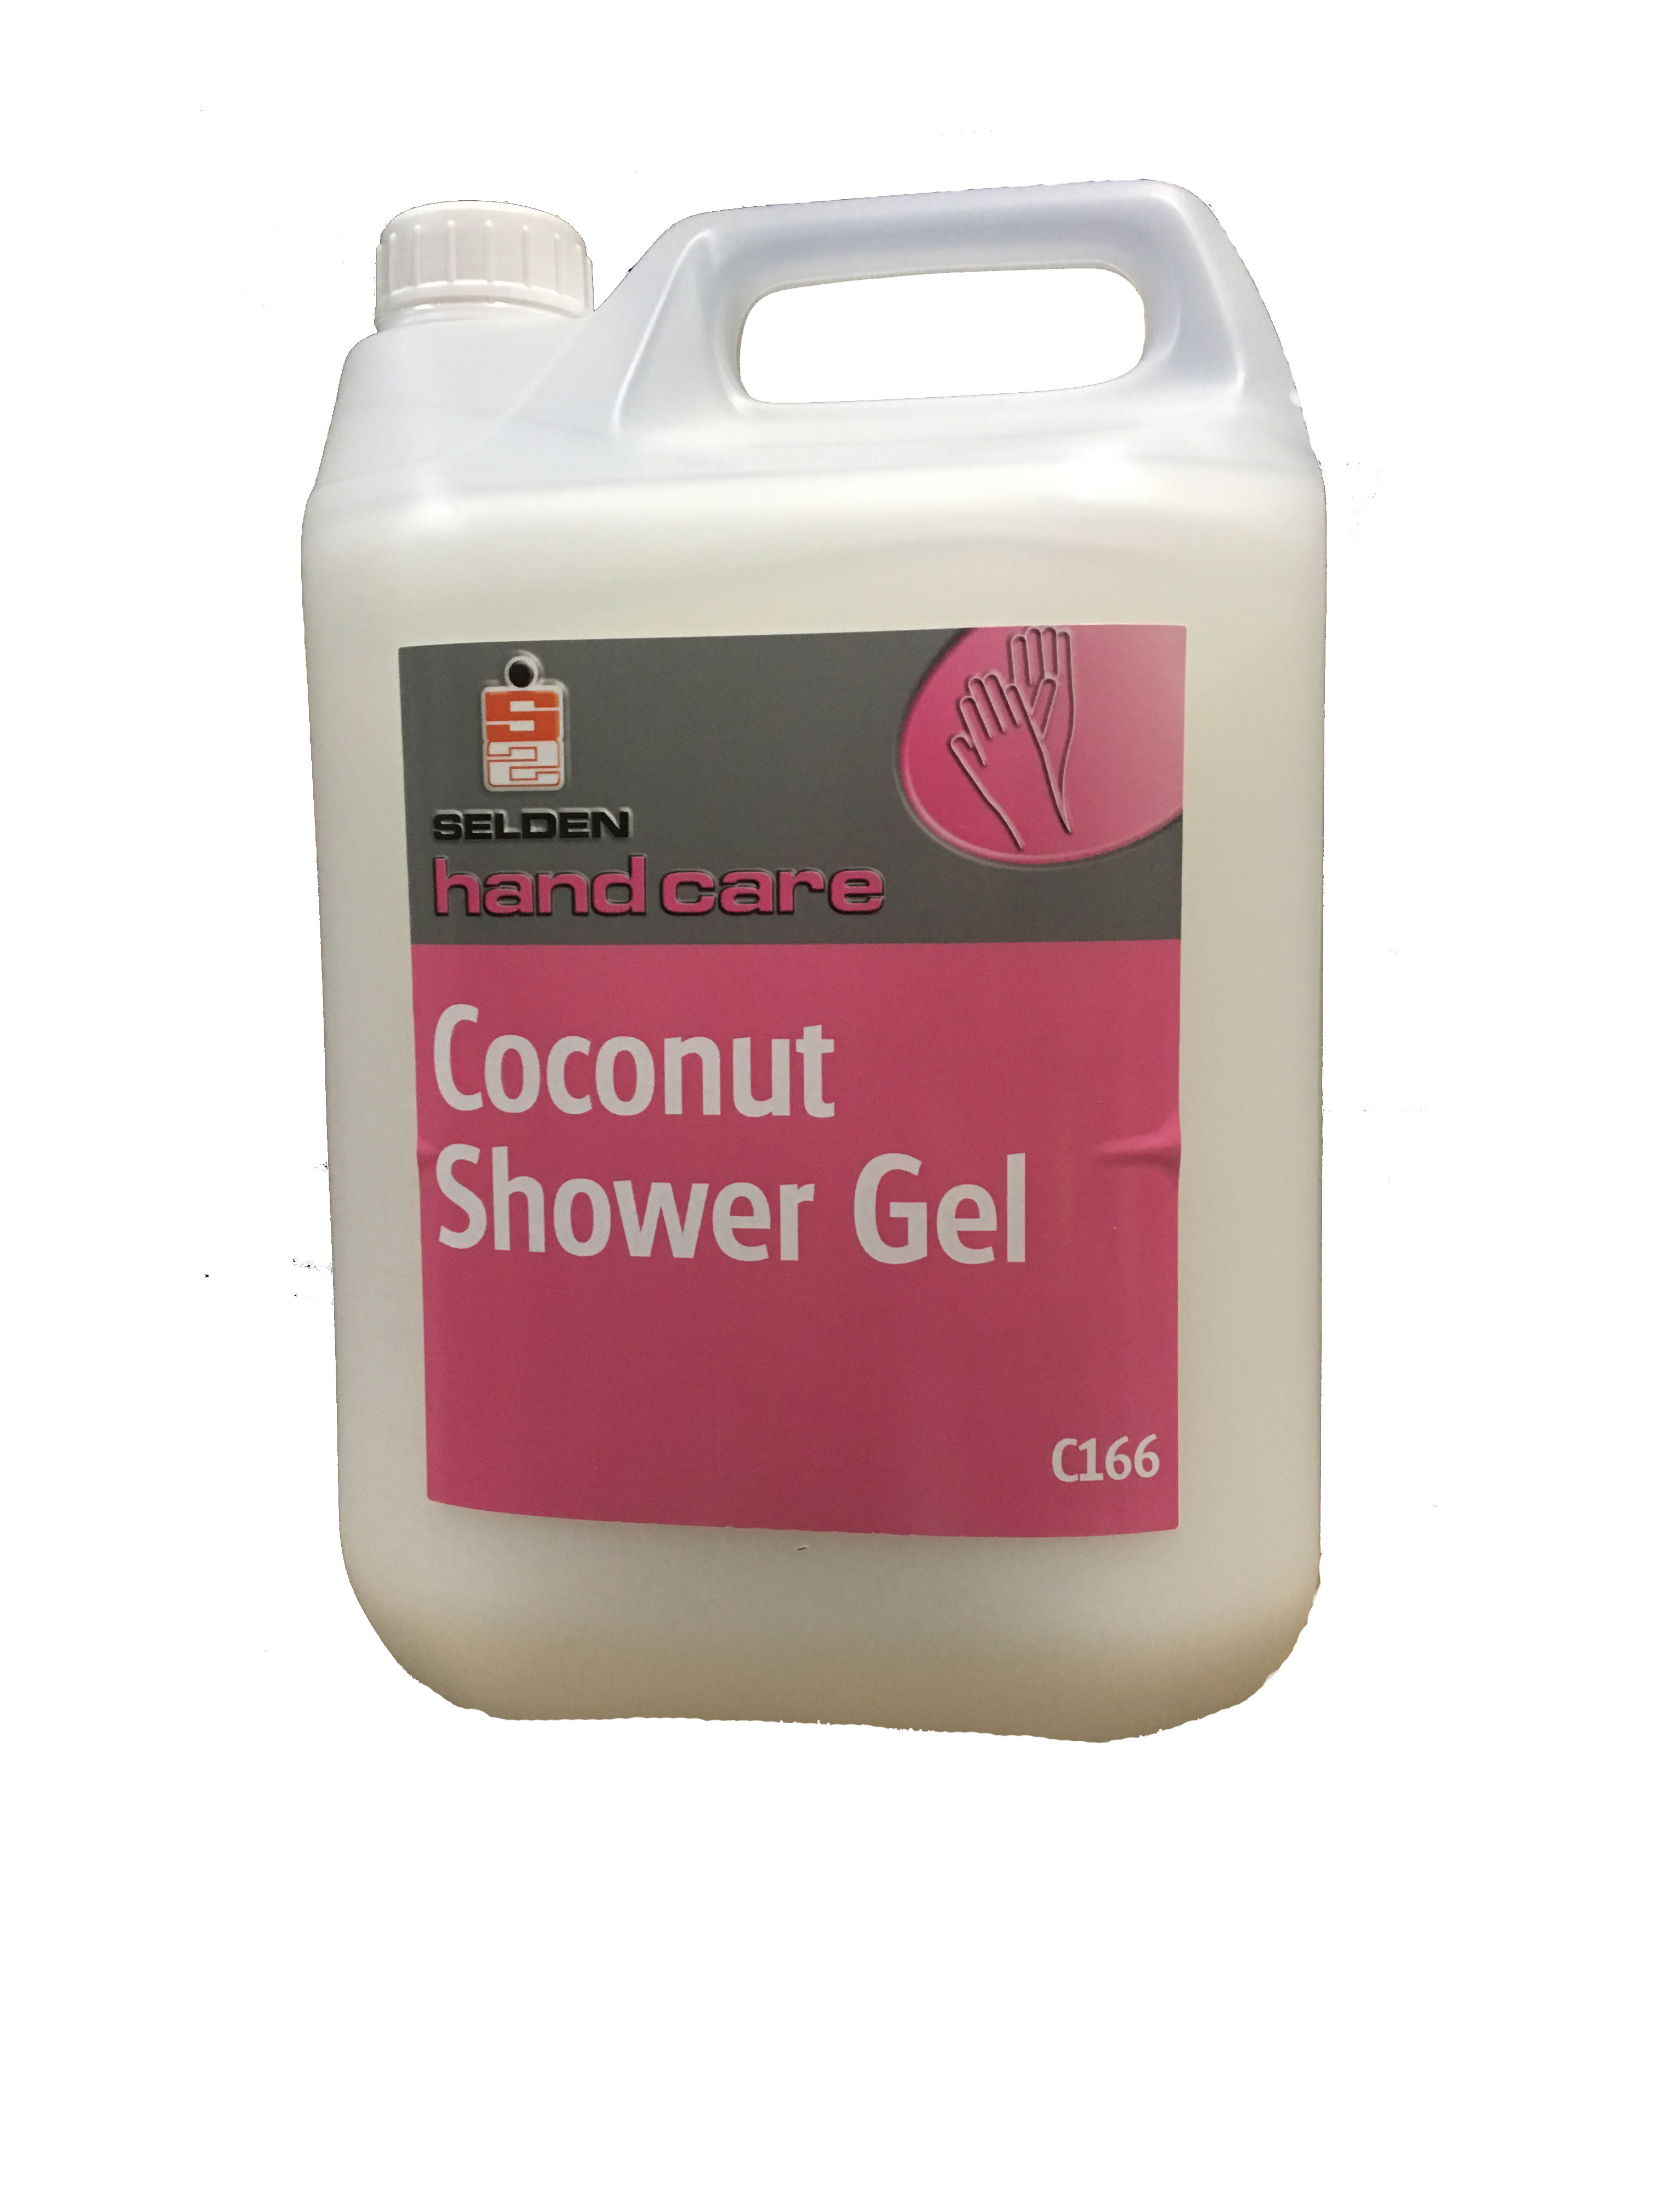 Coconut Hair and Body wash shower gel 5ltr C166